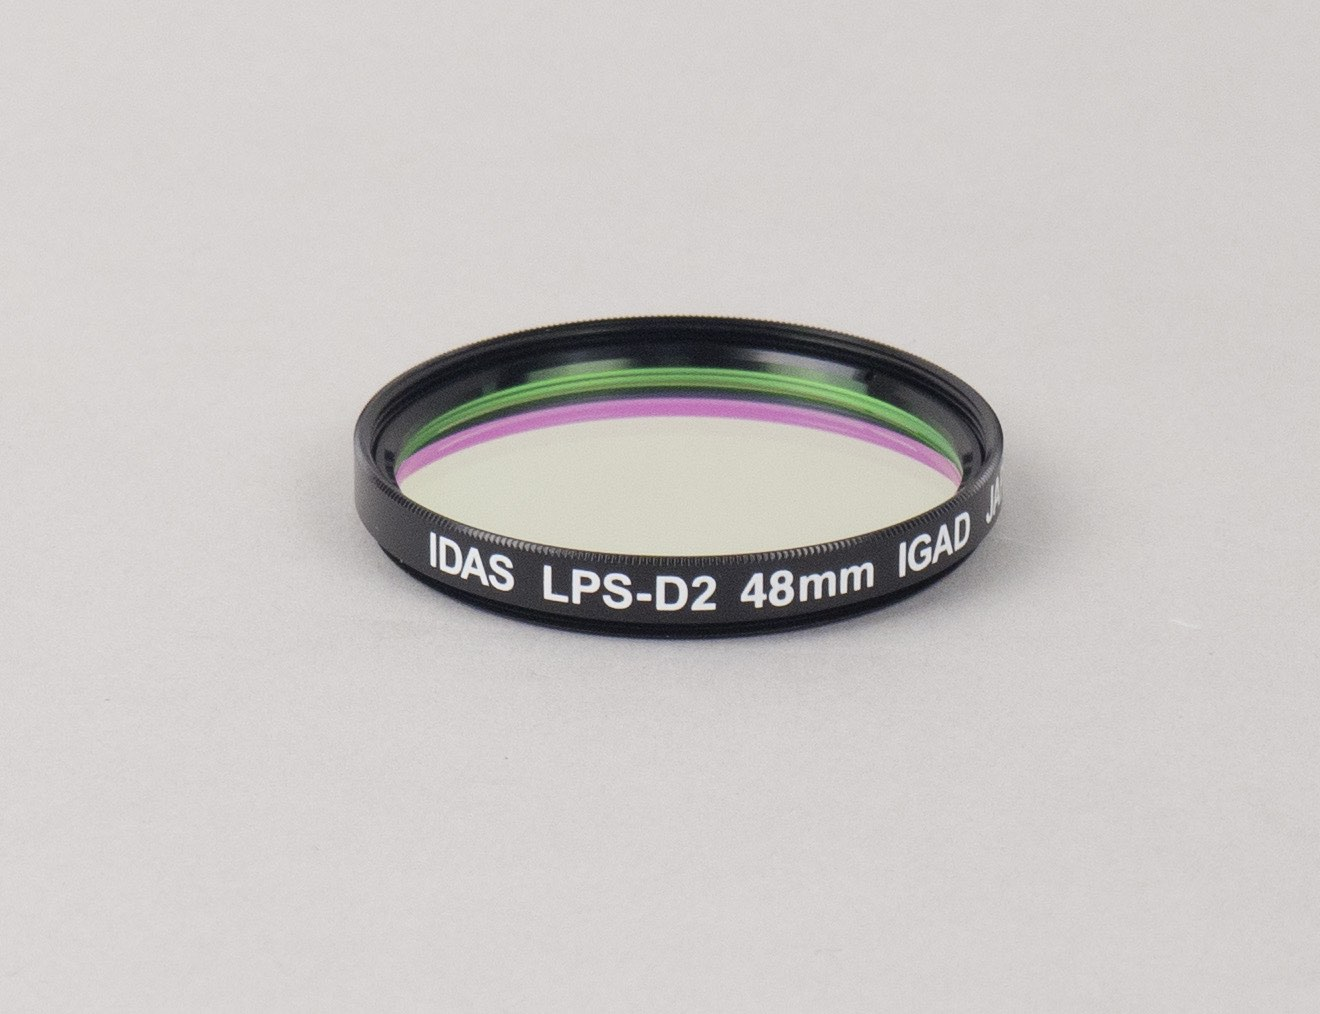 "Hutech IDAS LPS-D2 Nebula filter for Astrophotography - 2"" / M48 mounted [EN]"